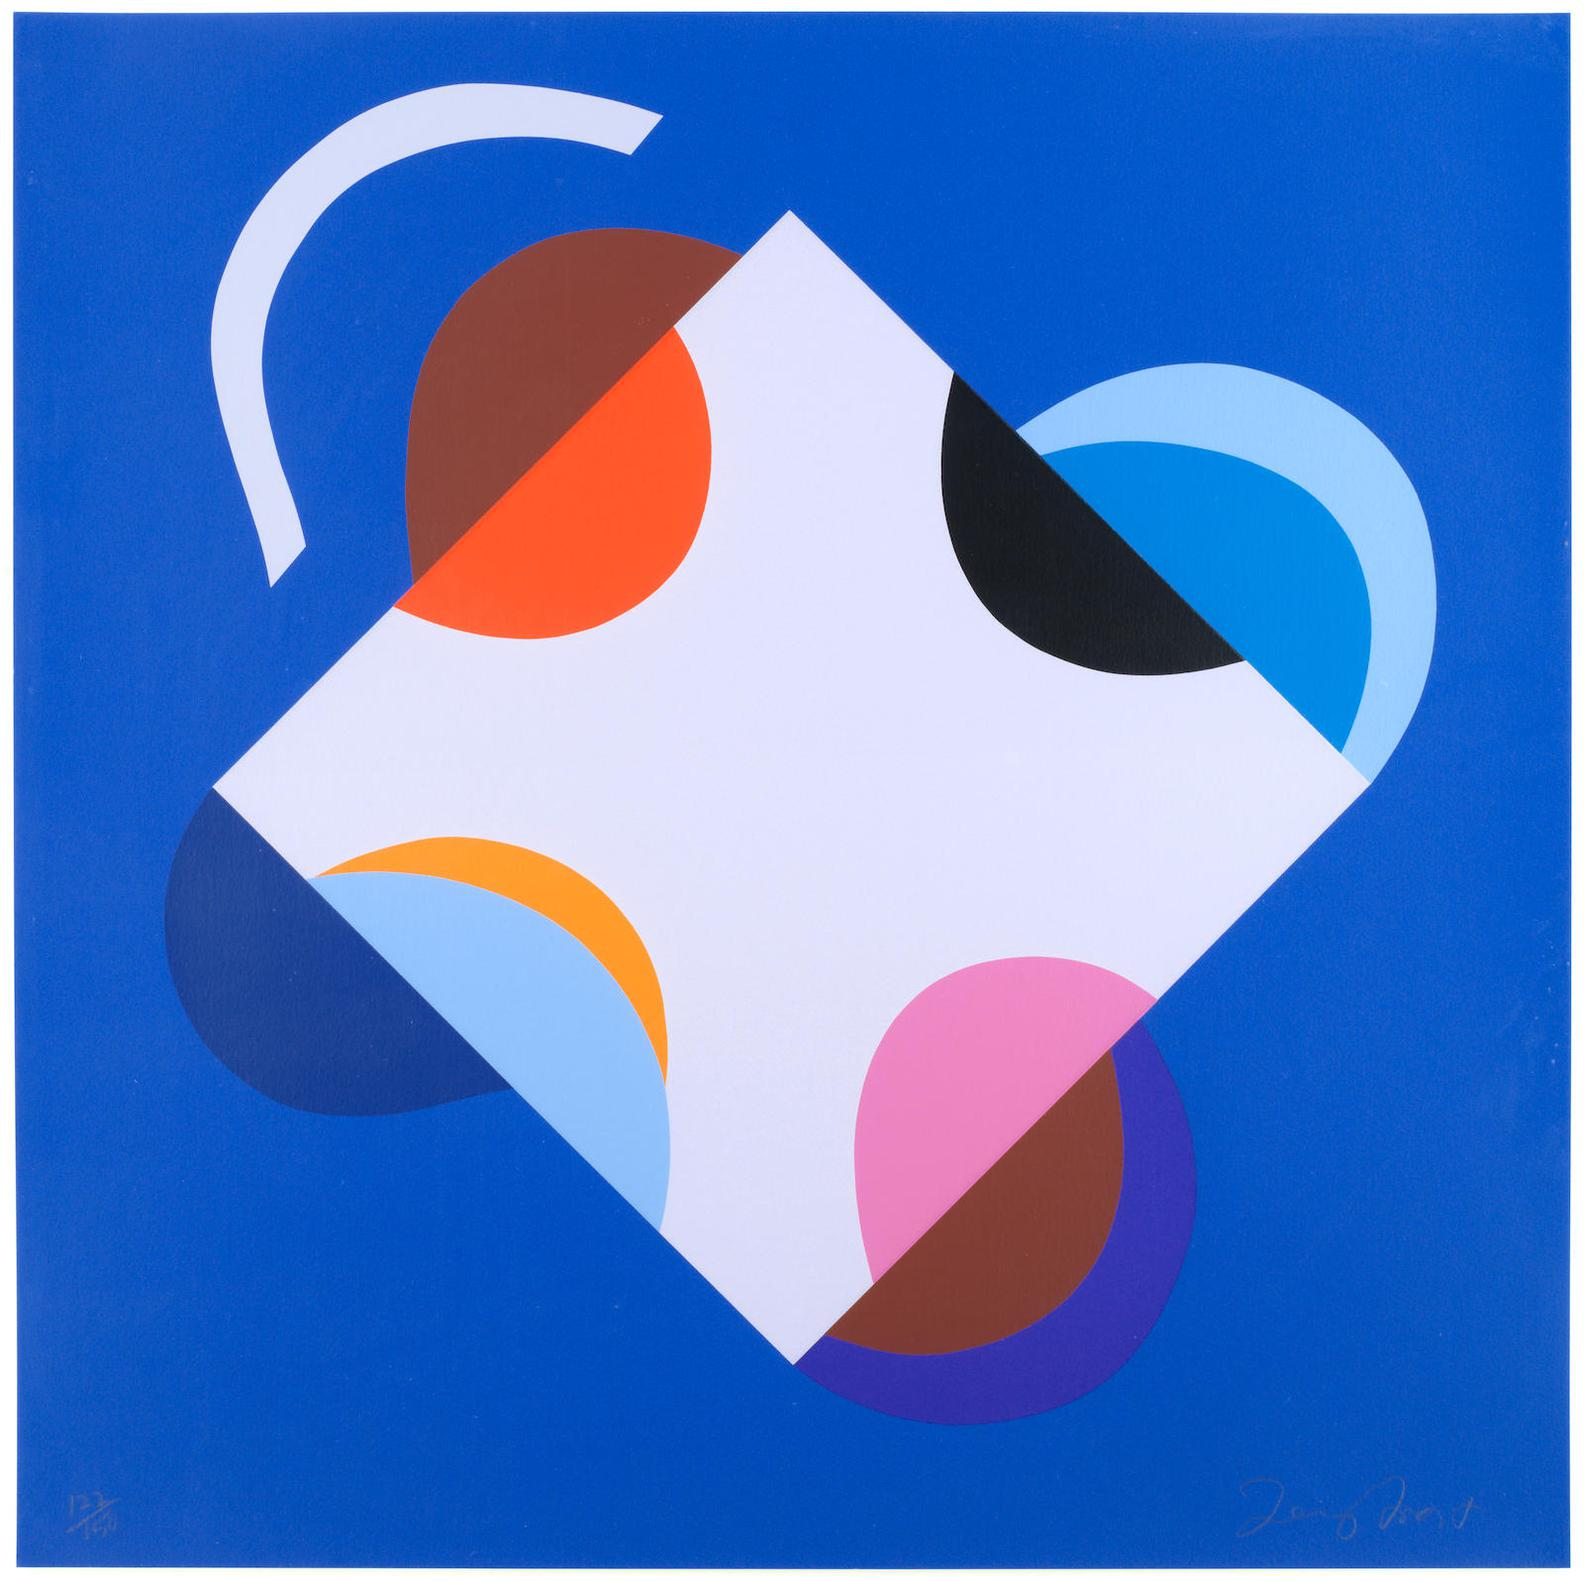 Terry Frost-Development Of A Square Within A Square (Blue, Green, Orange & Red)-2000